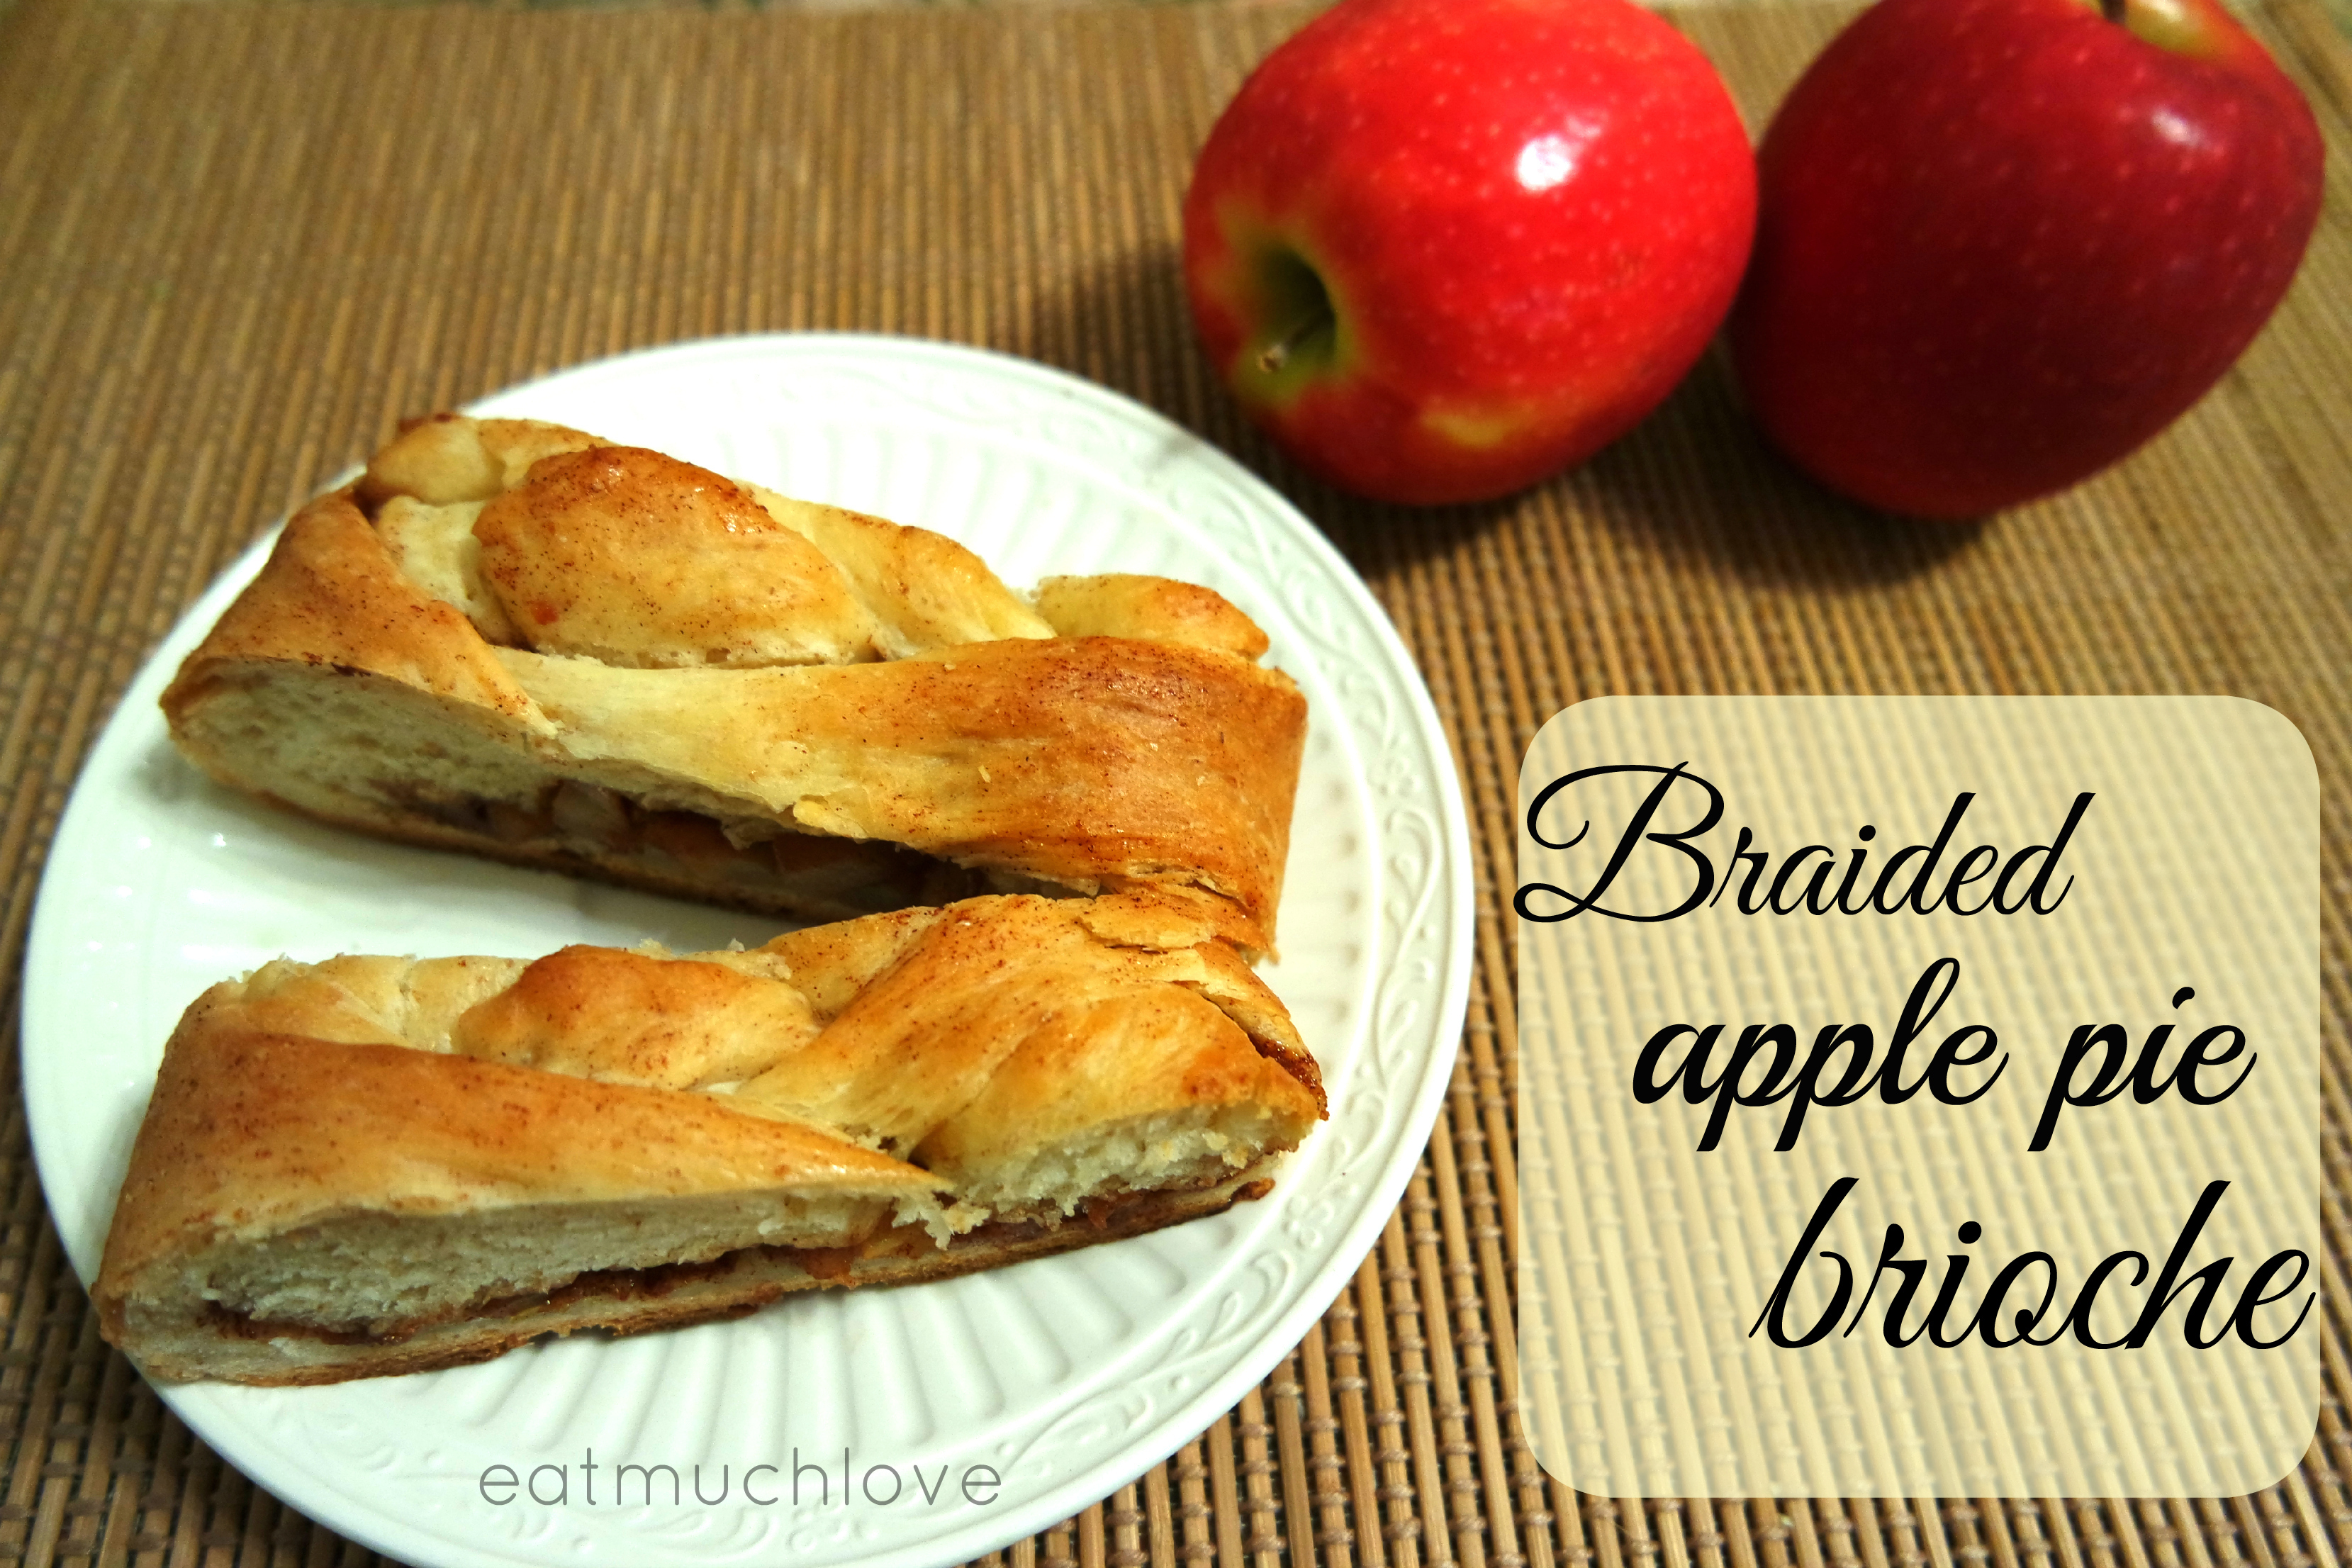 Braided apple cinnamon brioche